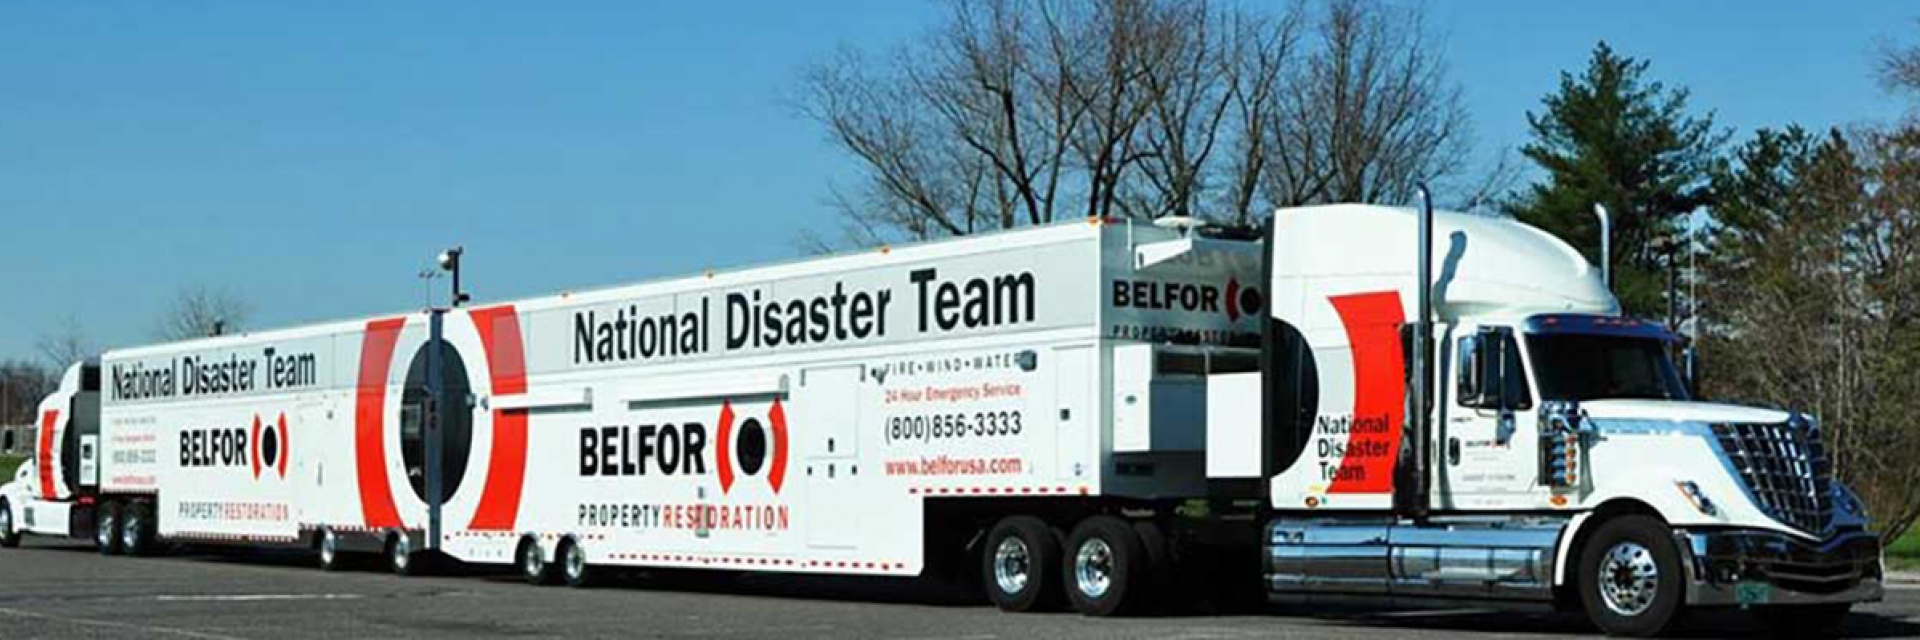 disaster-team-trucks